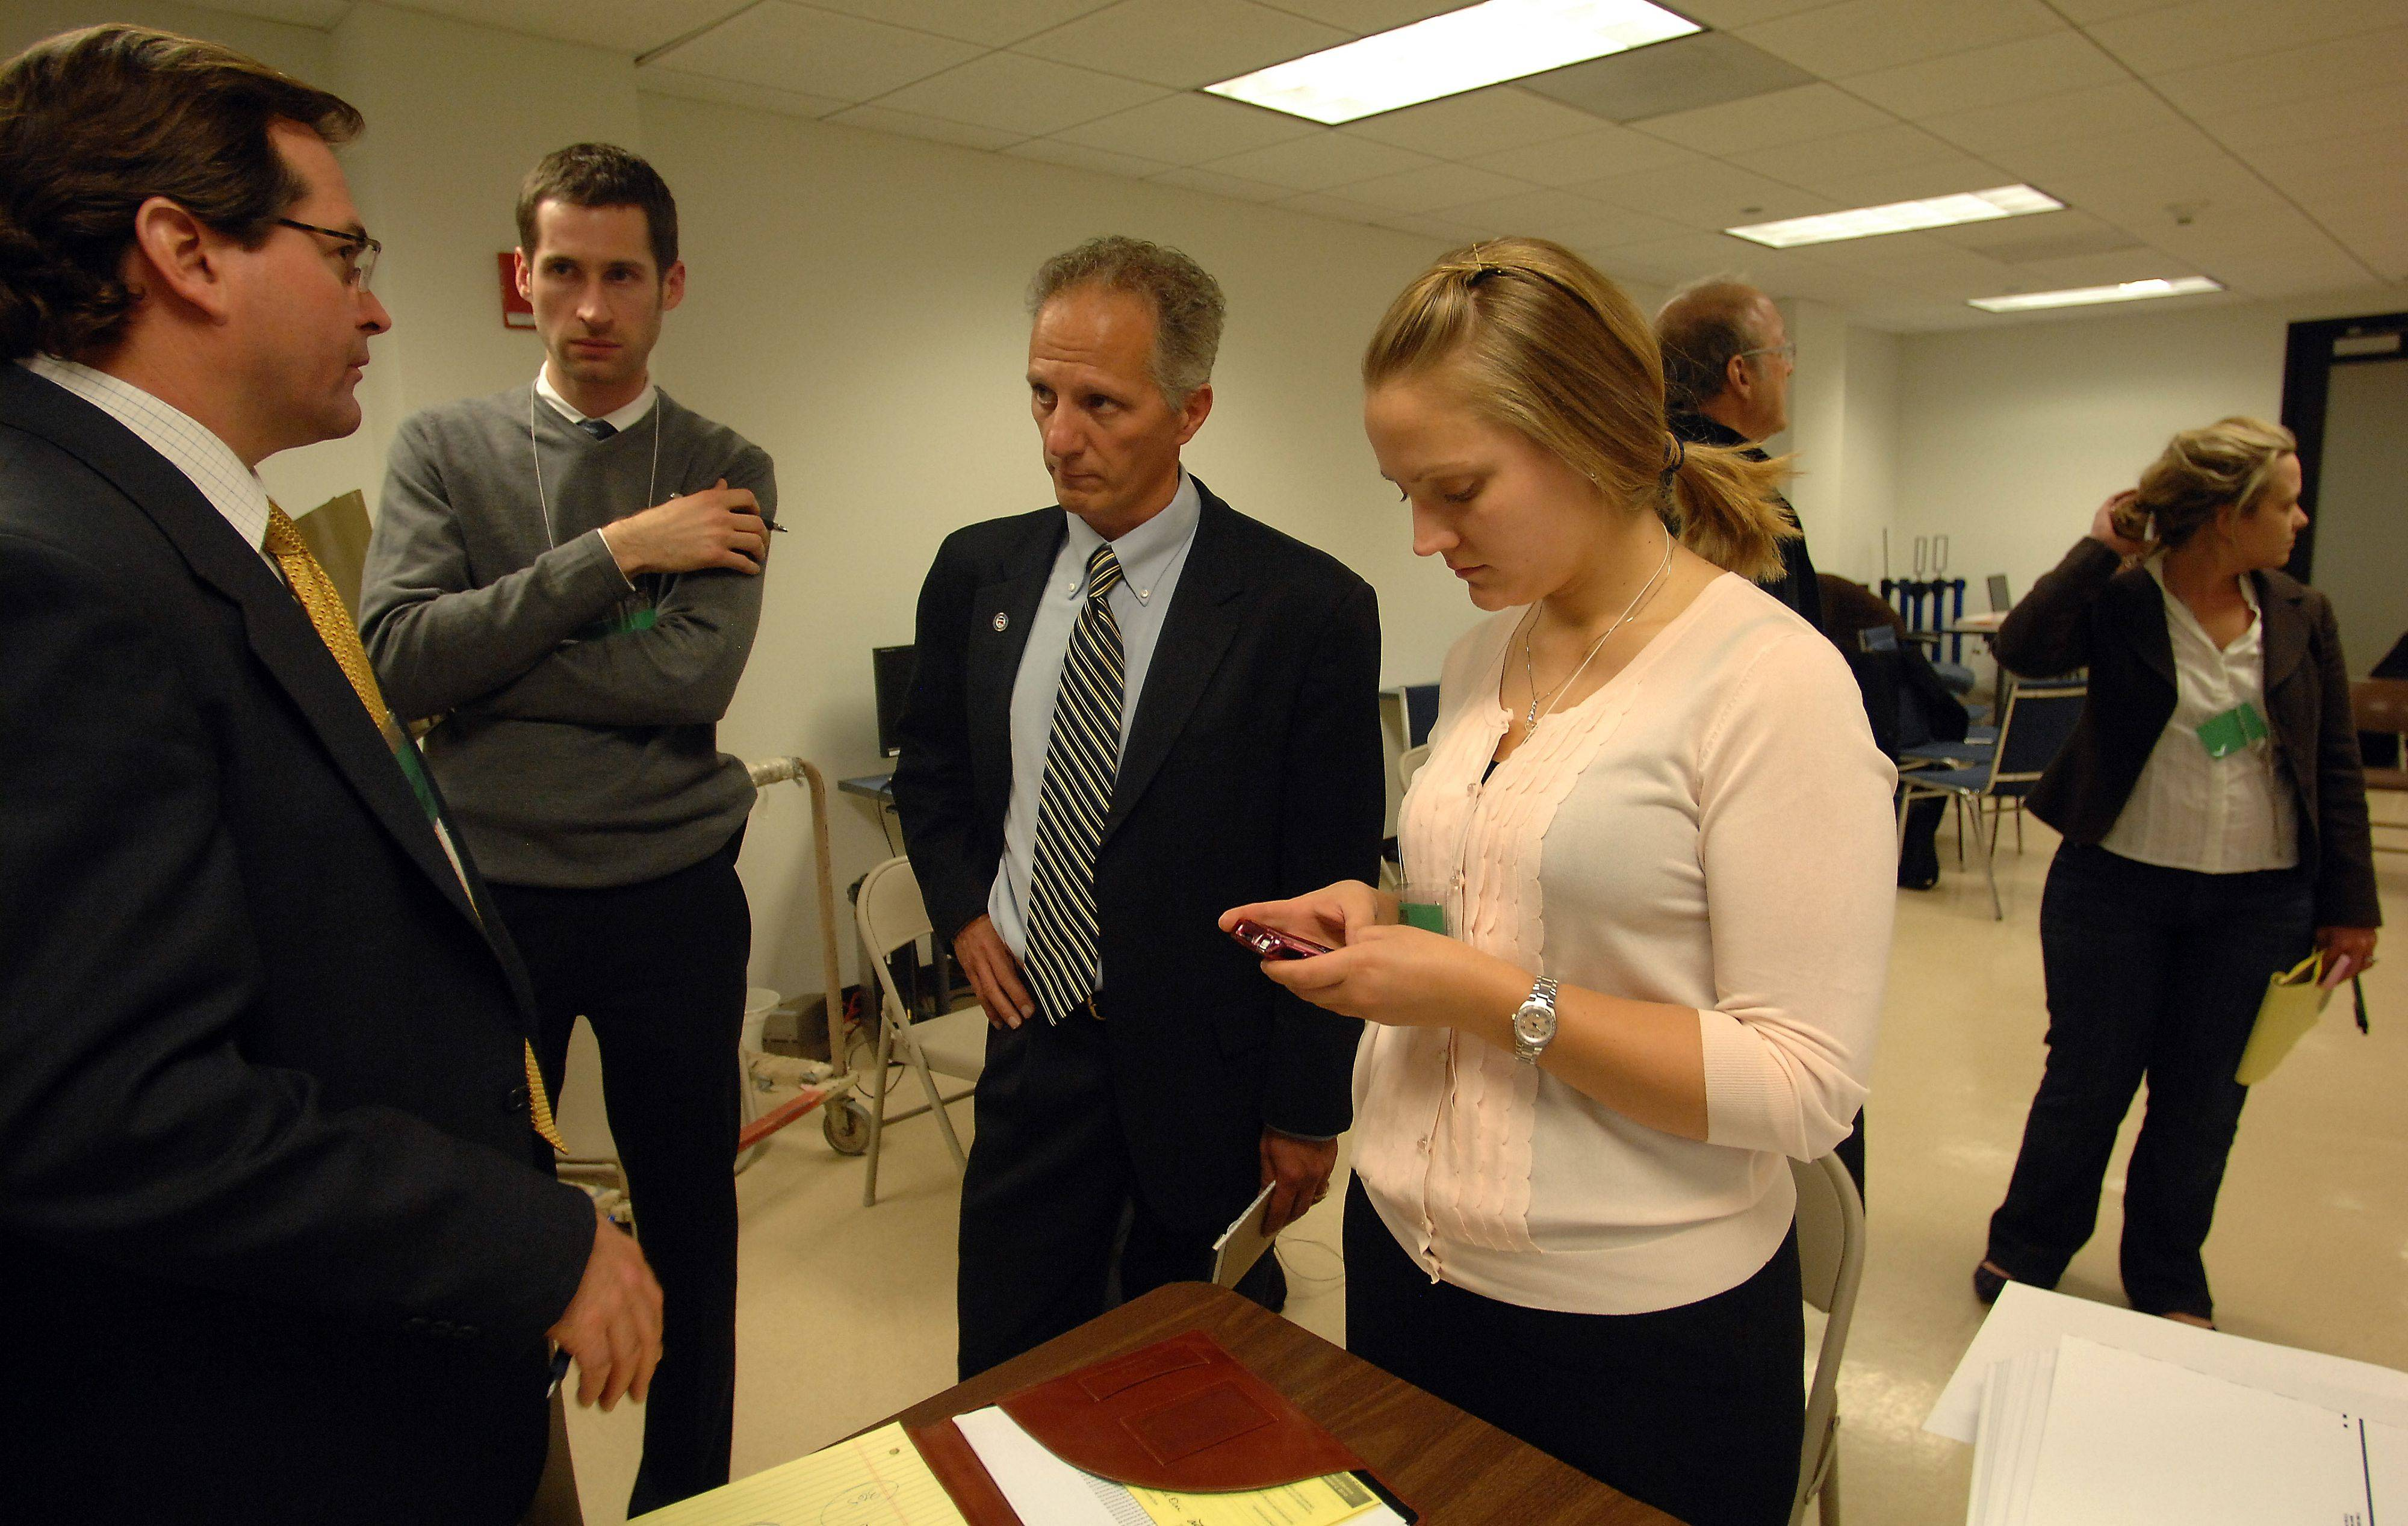 Republican attorney Brien Sheahan (left) talks with Brian Neale, Legislative Counsel from Washington D.C., Joe Walsh campaign manager Nick Provenzano and Kristina Hanson, attorney for the Walsh camp, about the absentee ballots being counted in Chicago on Thursday. In the background are members of the Melissa Bean camp.